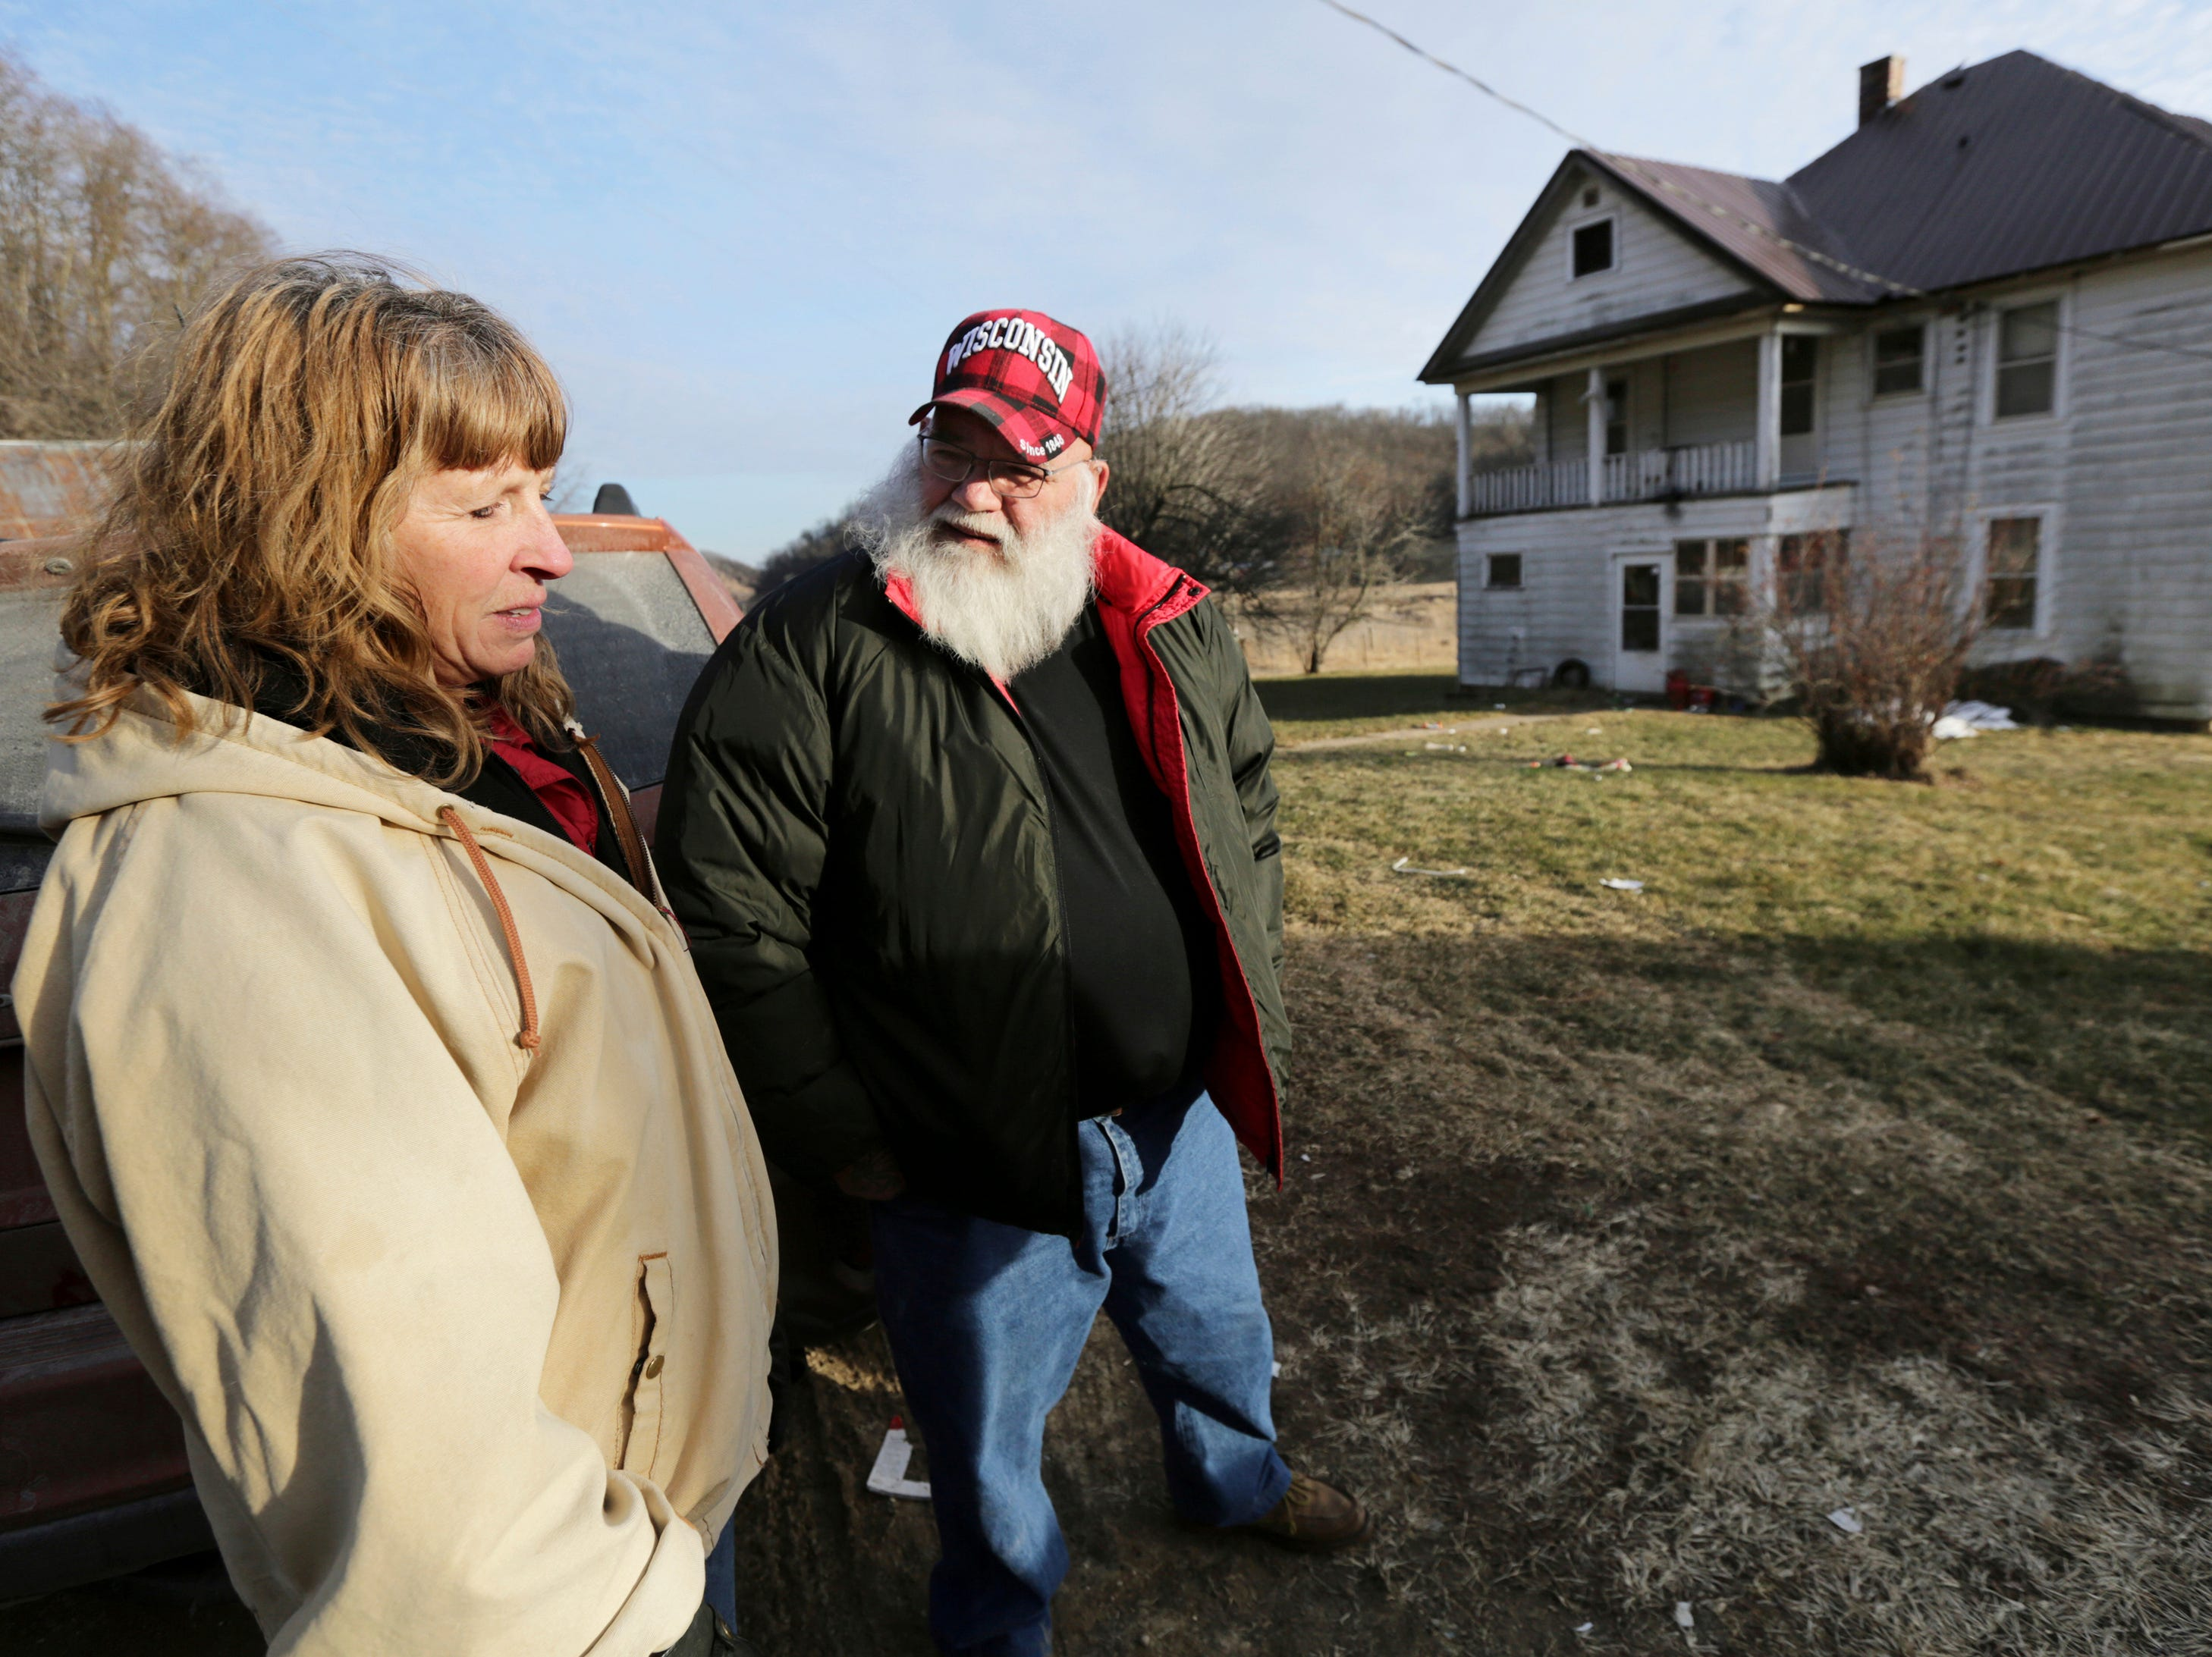 Suicide prevention project aims to help distressed farmers